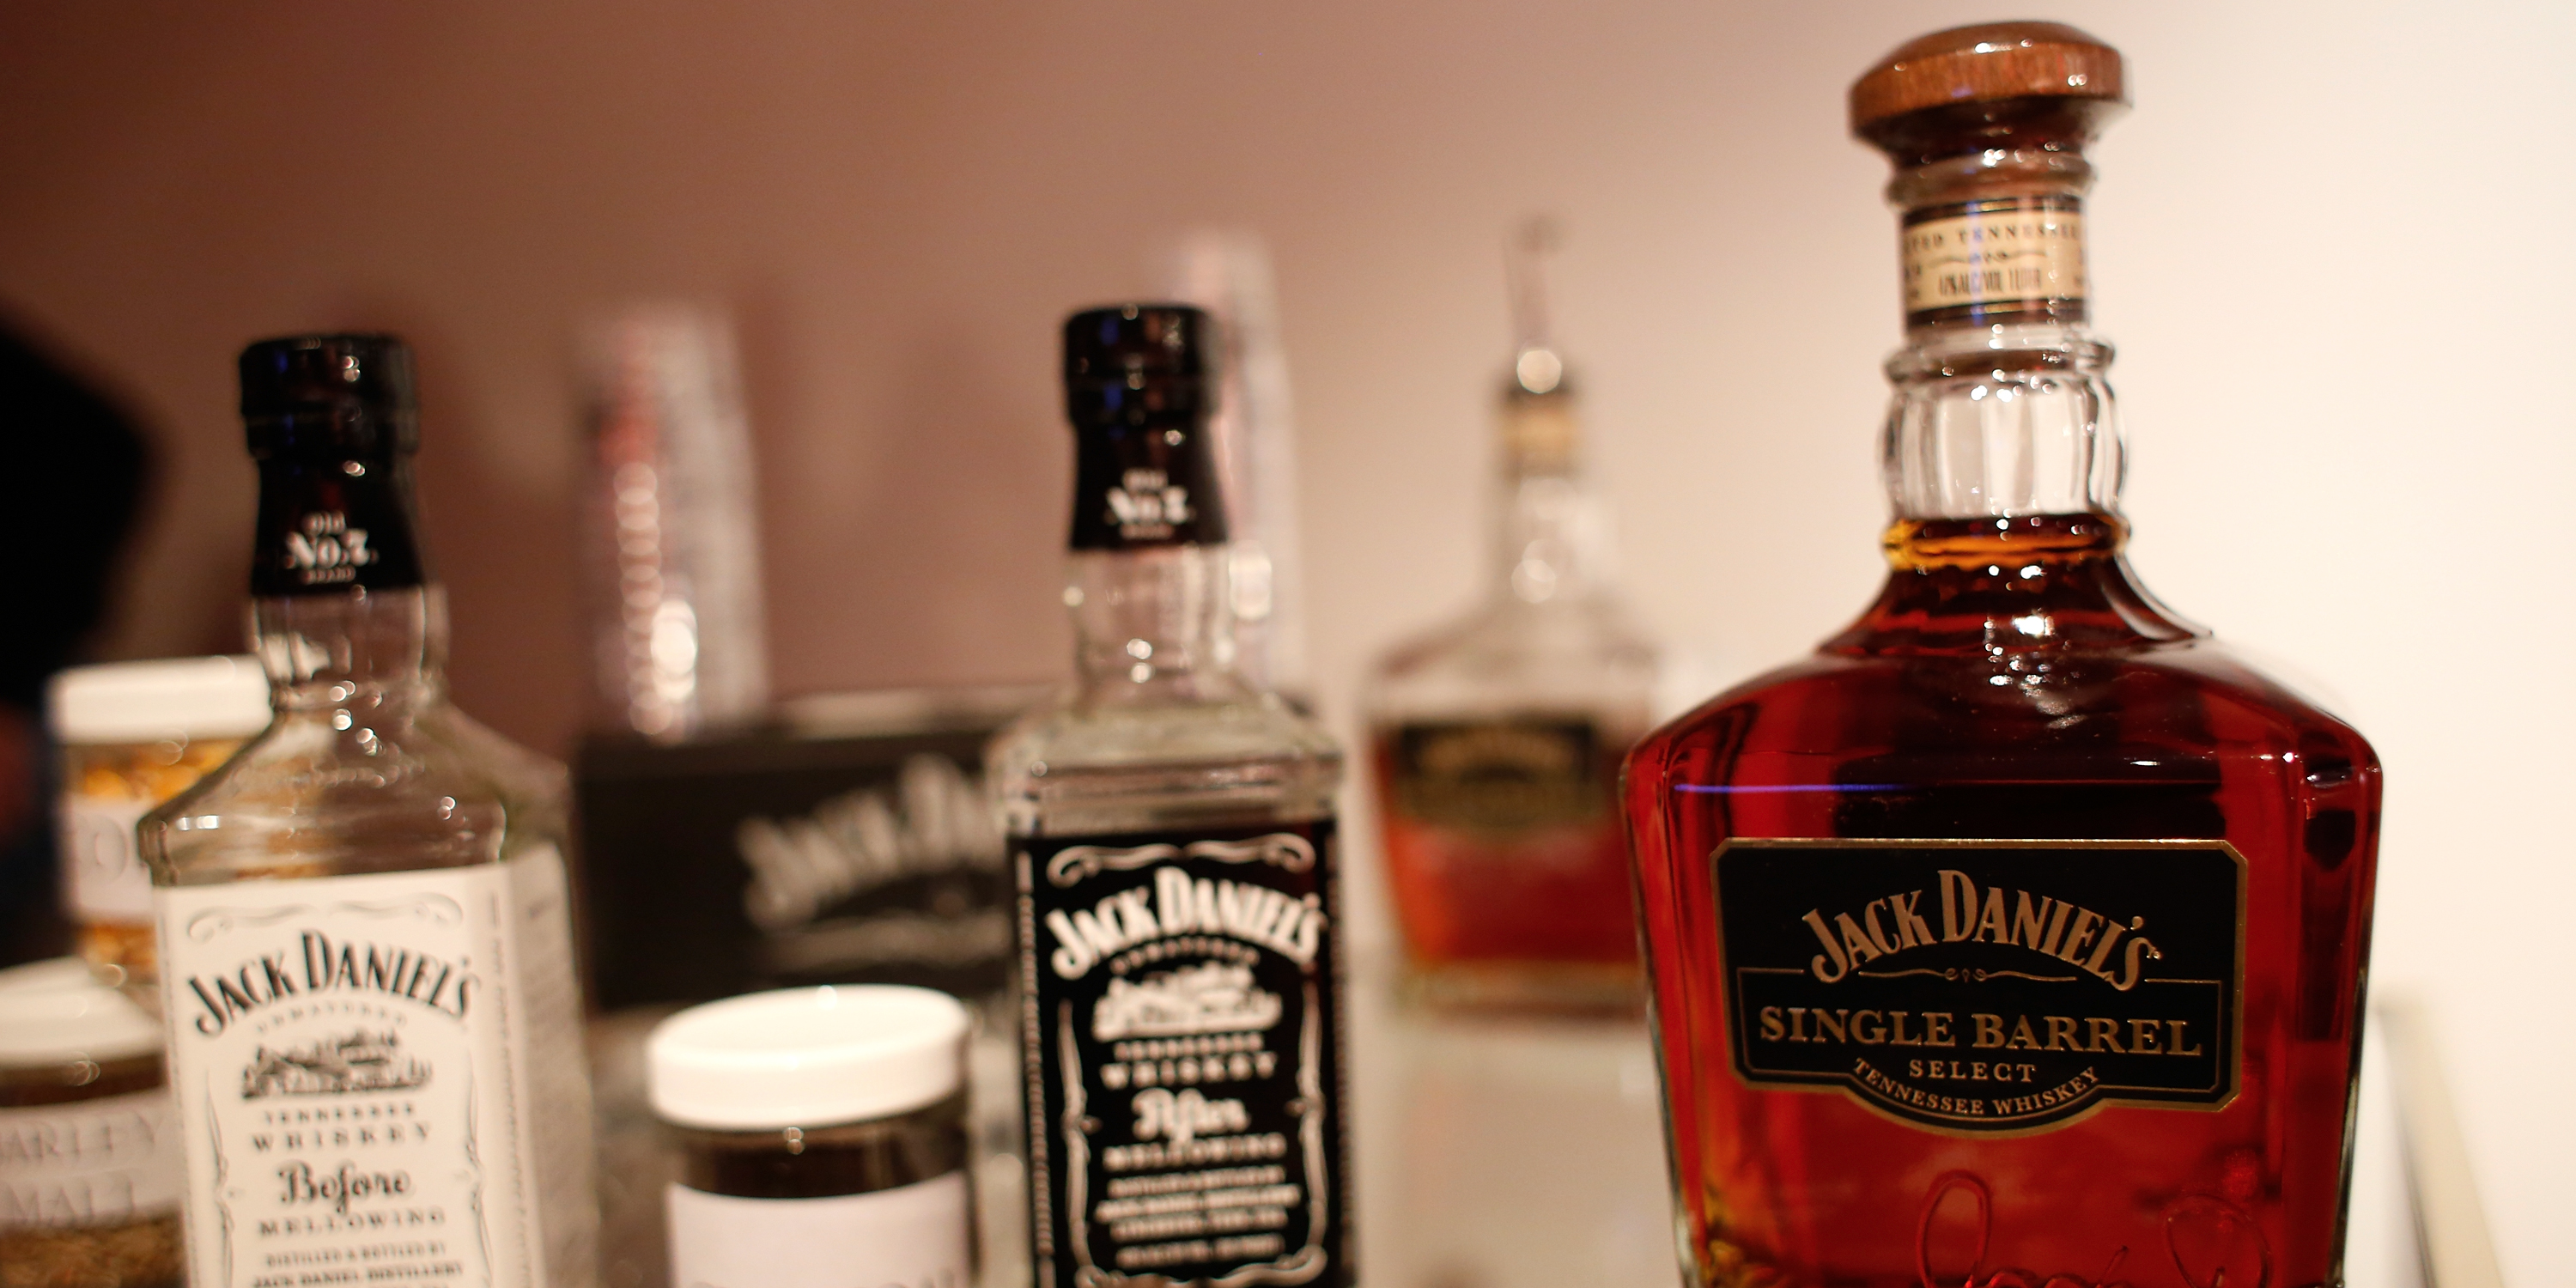 The Owner Of Corona Reportedly Offered To Buy The Owner Of Jack Daniels But Was Turned Down photo